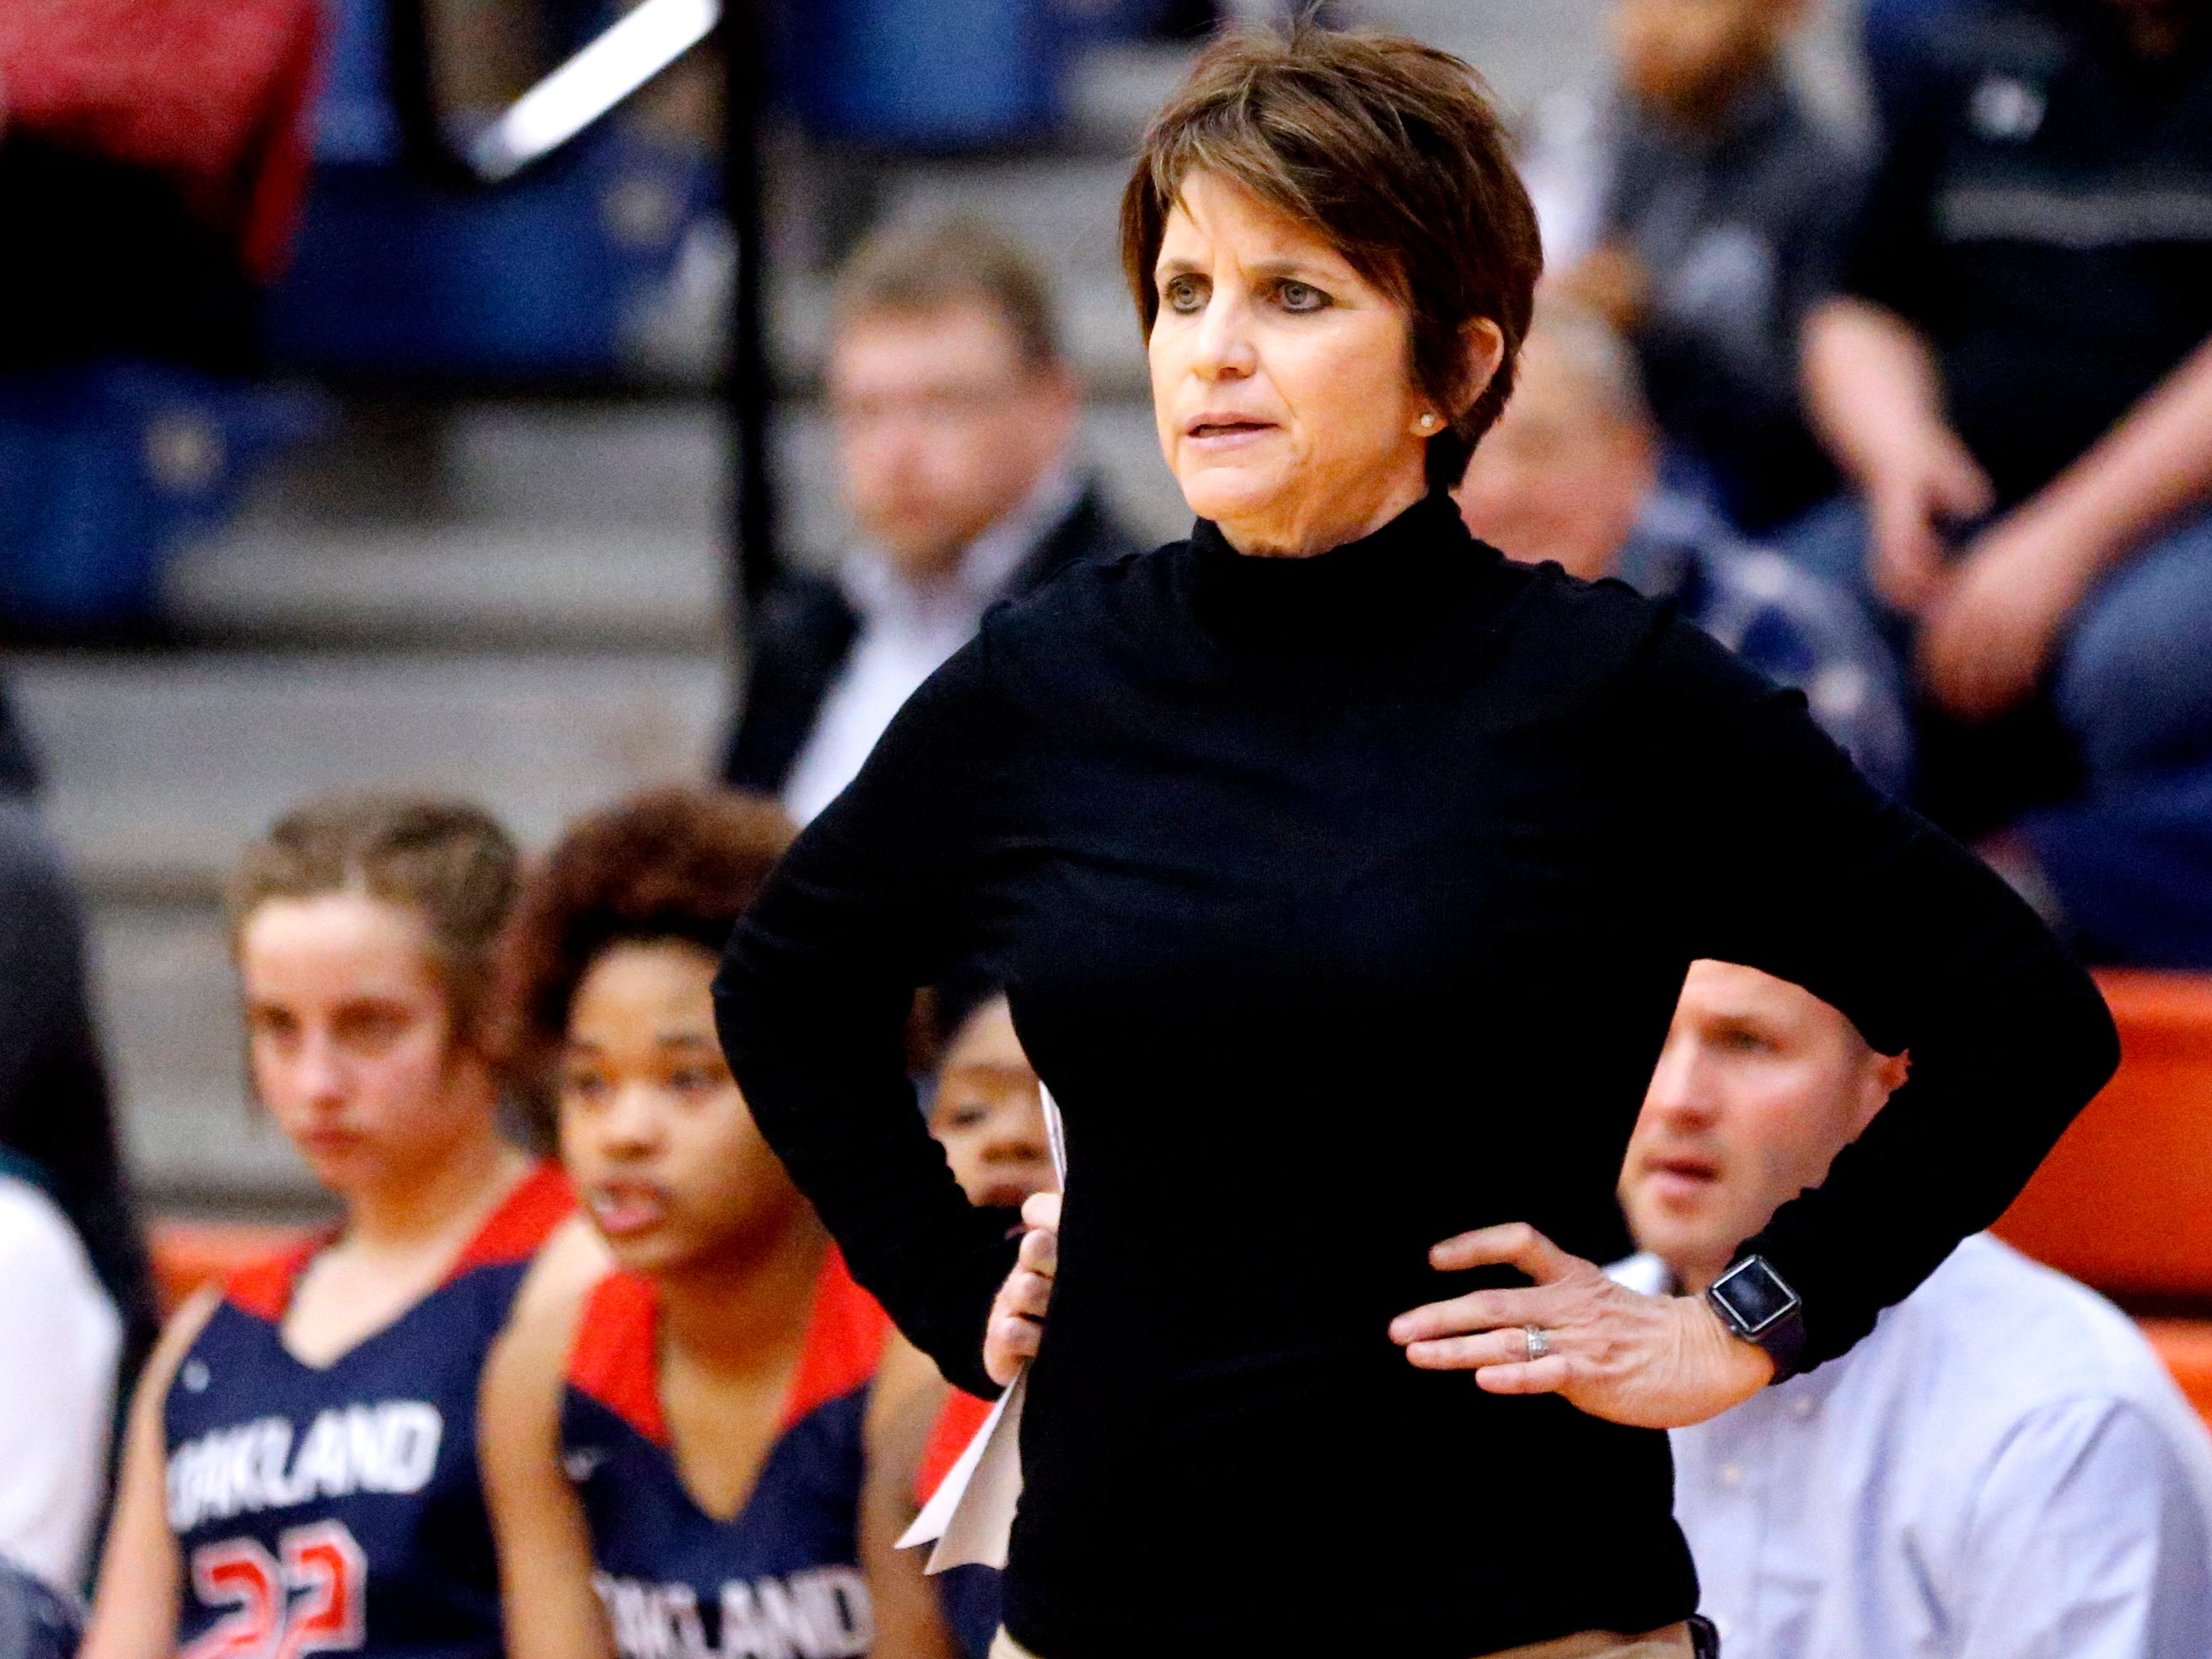 Oakland's head coach Jennifer Grandstaff on the sidelines during the game against Blackman on Friday, Feb. 8, 2019.